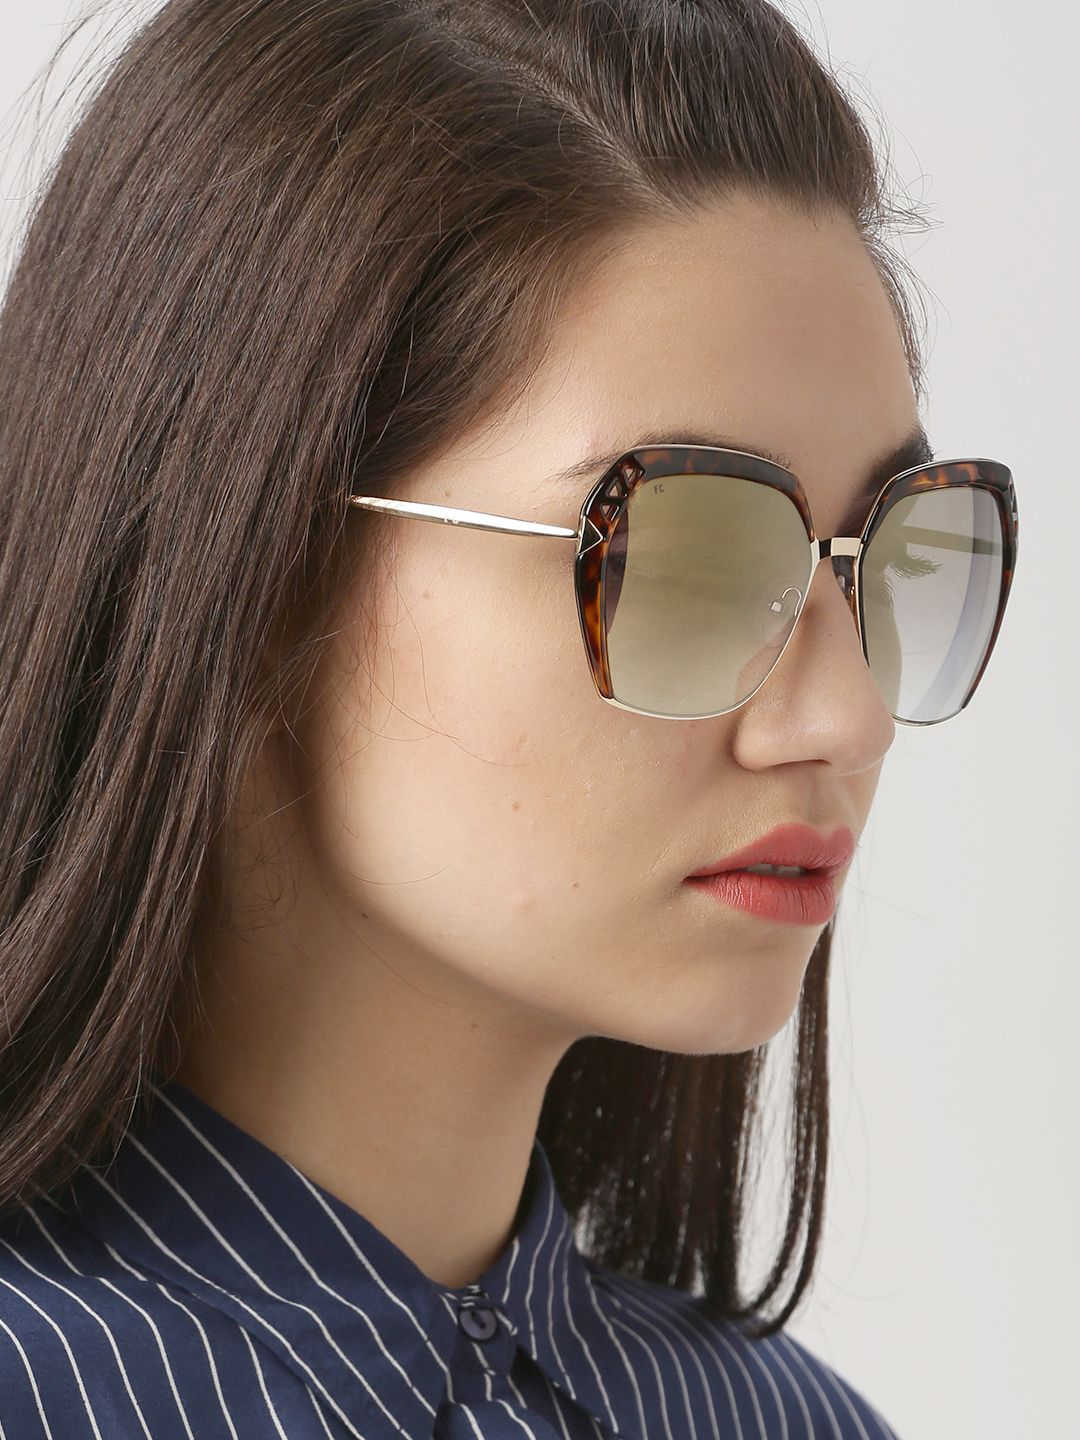 c901dd000b French Connection Women Mirrored Rectangle Sunglasses FC 7382 C1 S ...